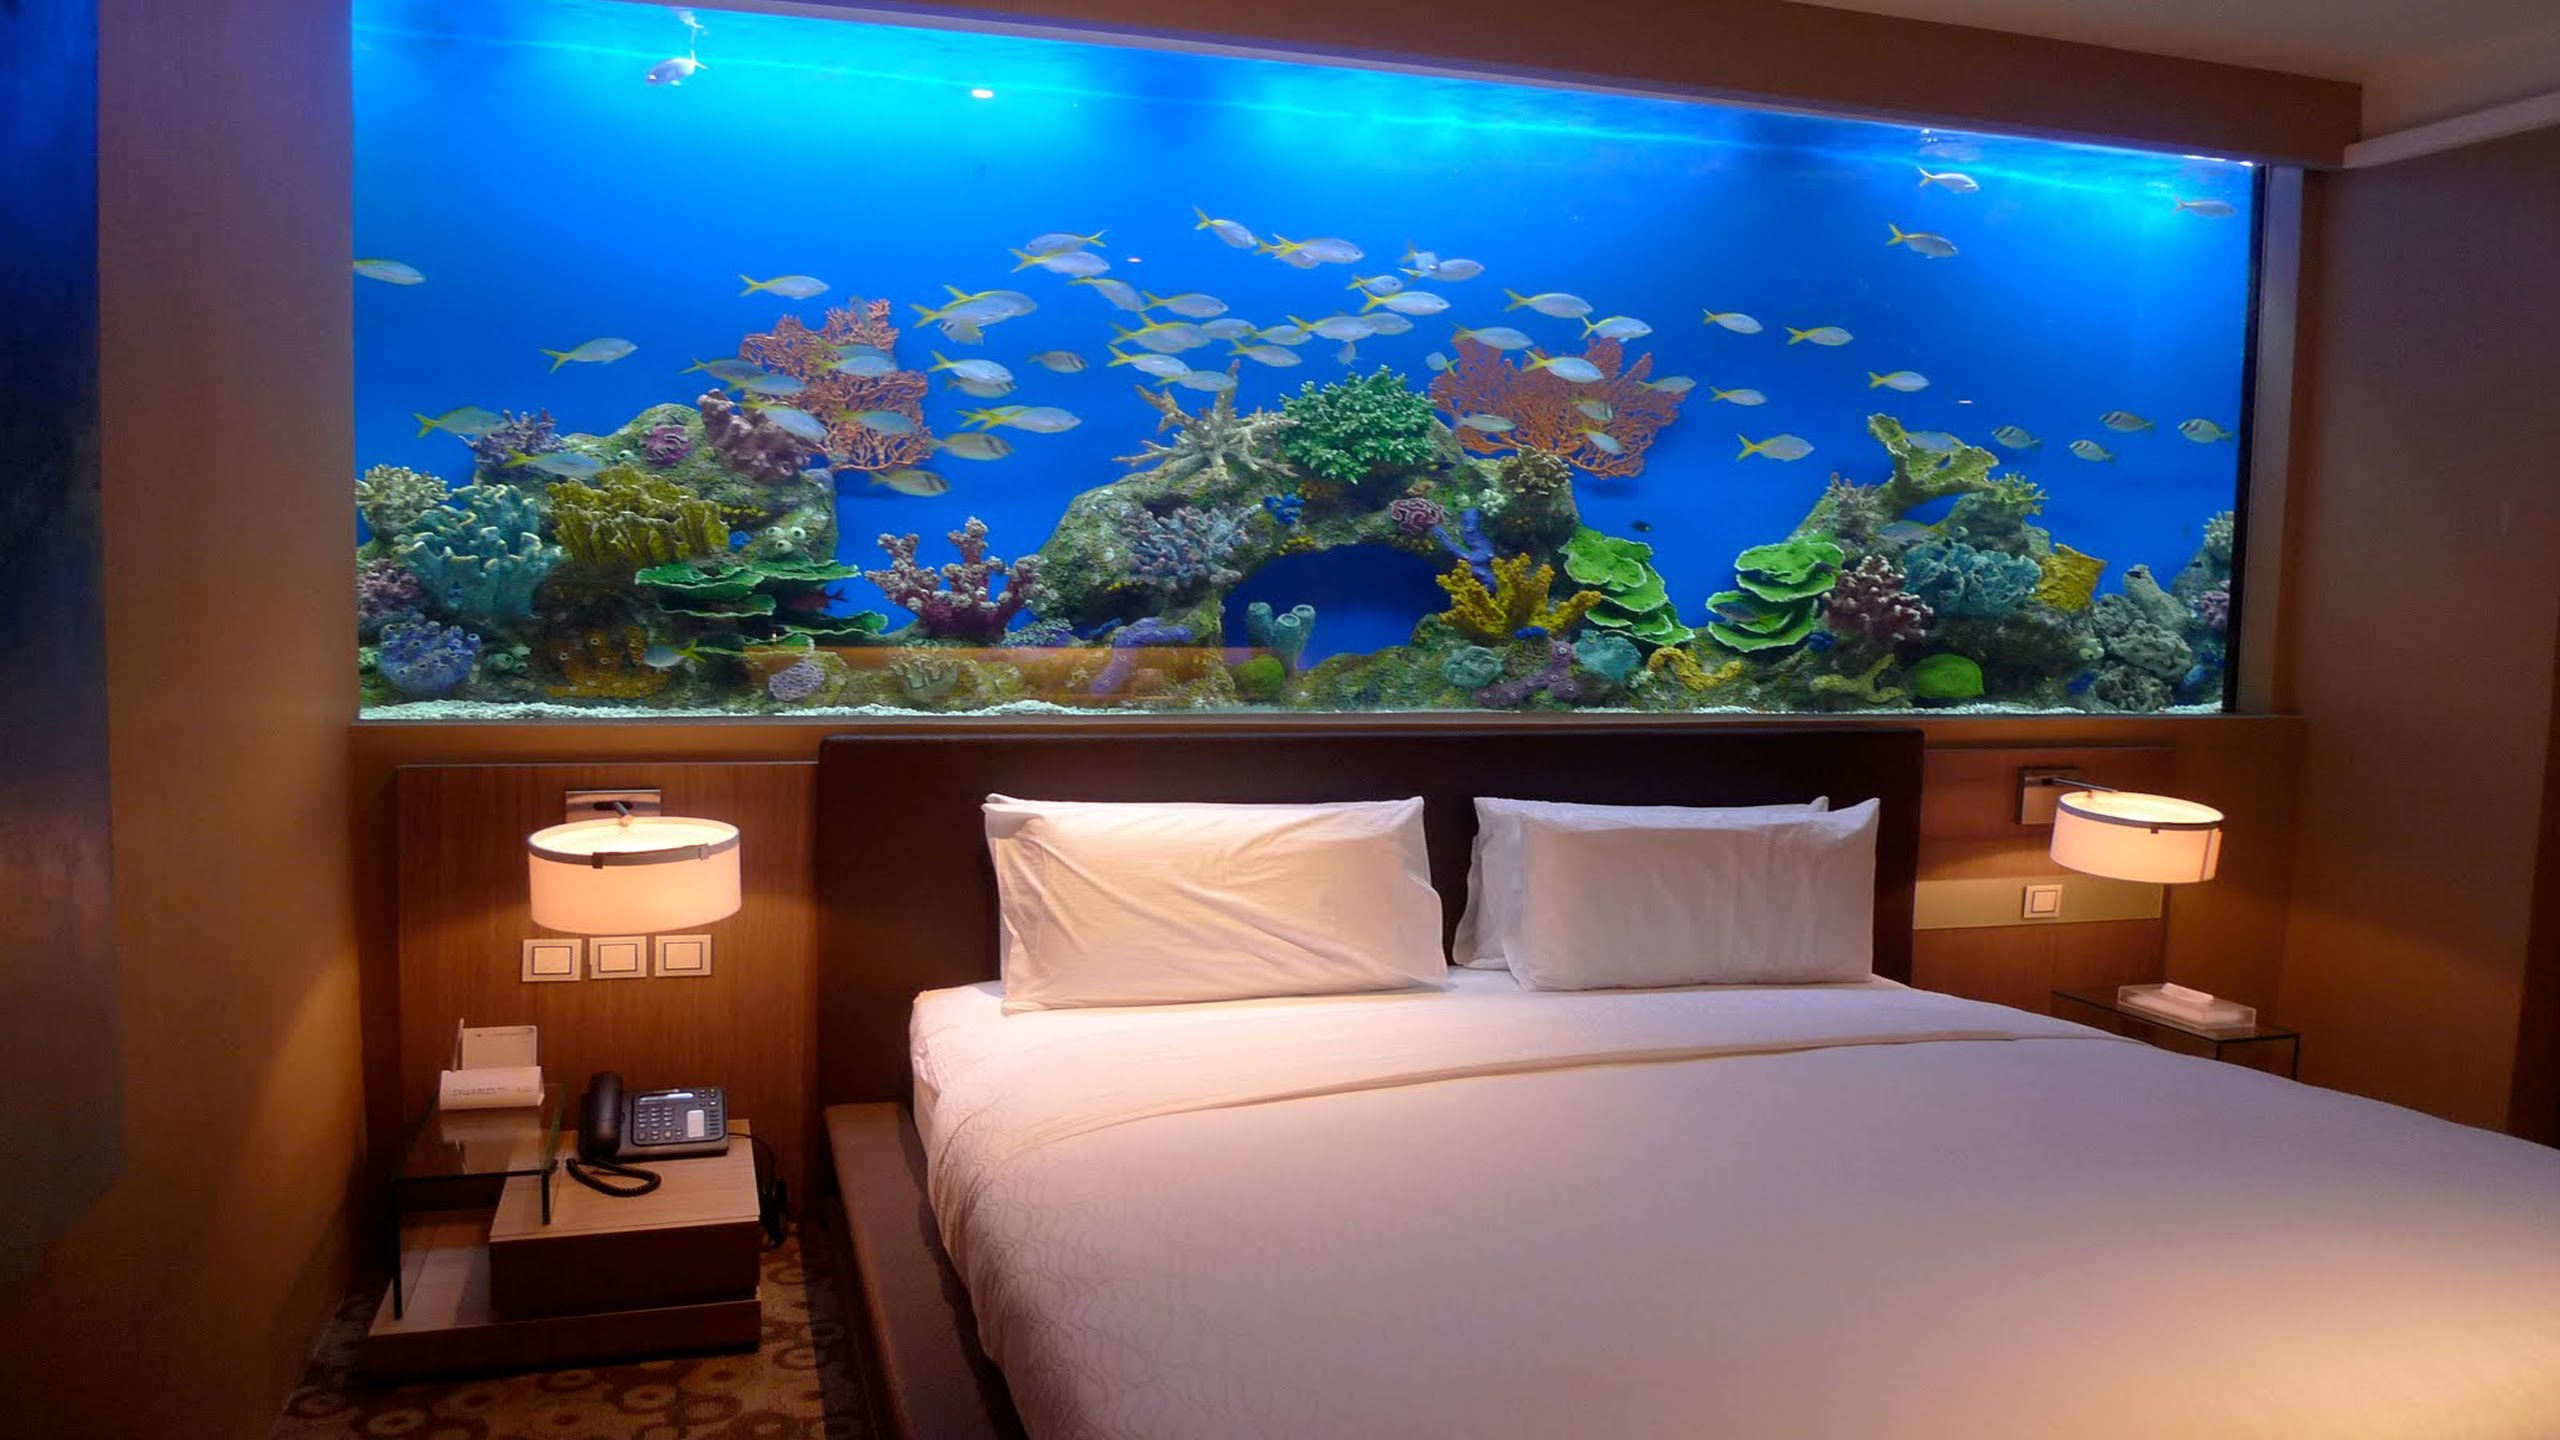 17 Next Level Aquariums That Are Out Of This World Wow Gallery